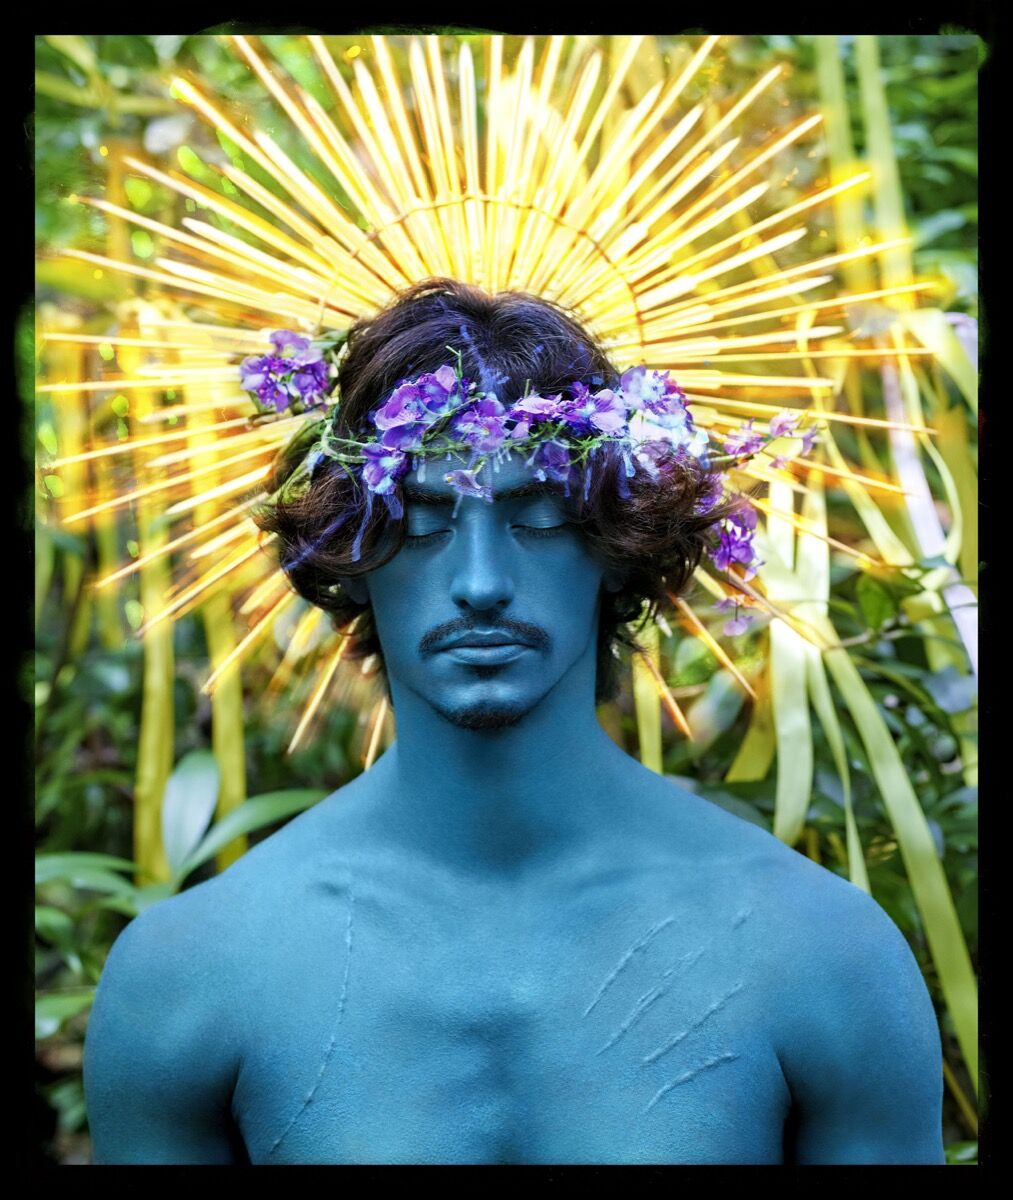 David LaChapelle, Behold, 2017. © David LaChapelle. Courtesy of Templon, Paris & Brussels.